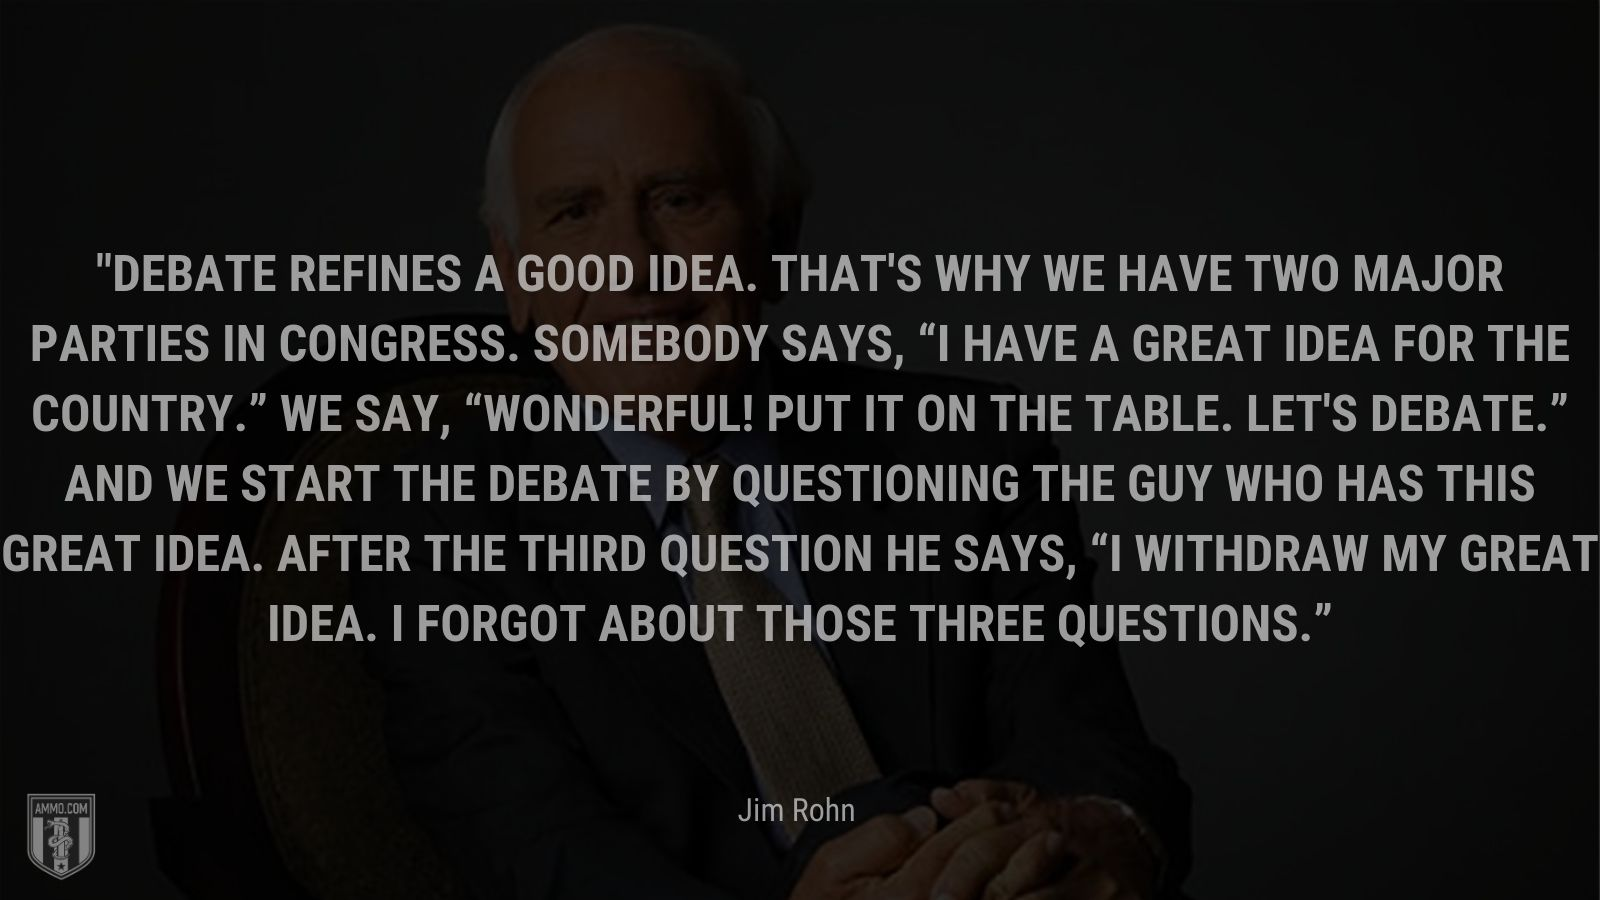 """""""Debate refines a good idea. That's why we have two major parties in Congress. Somebody says, I have a great idea for the country. We say, Wonderful! Put it on the table. Let's debate. And we start the debate by questioning the guy who has this great idea. After the third question he says, I withdraw my great idea. I forgot about those three questions."""" - Jim Rohn"""